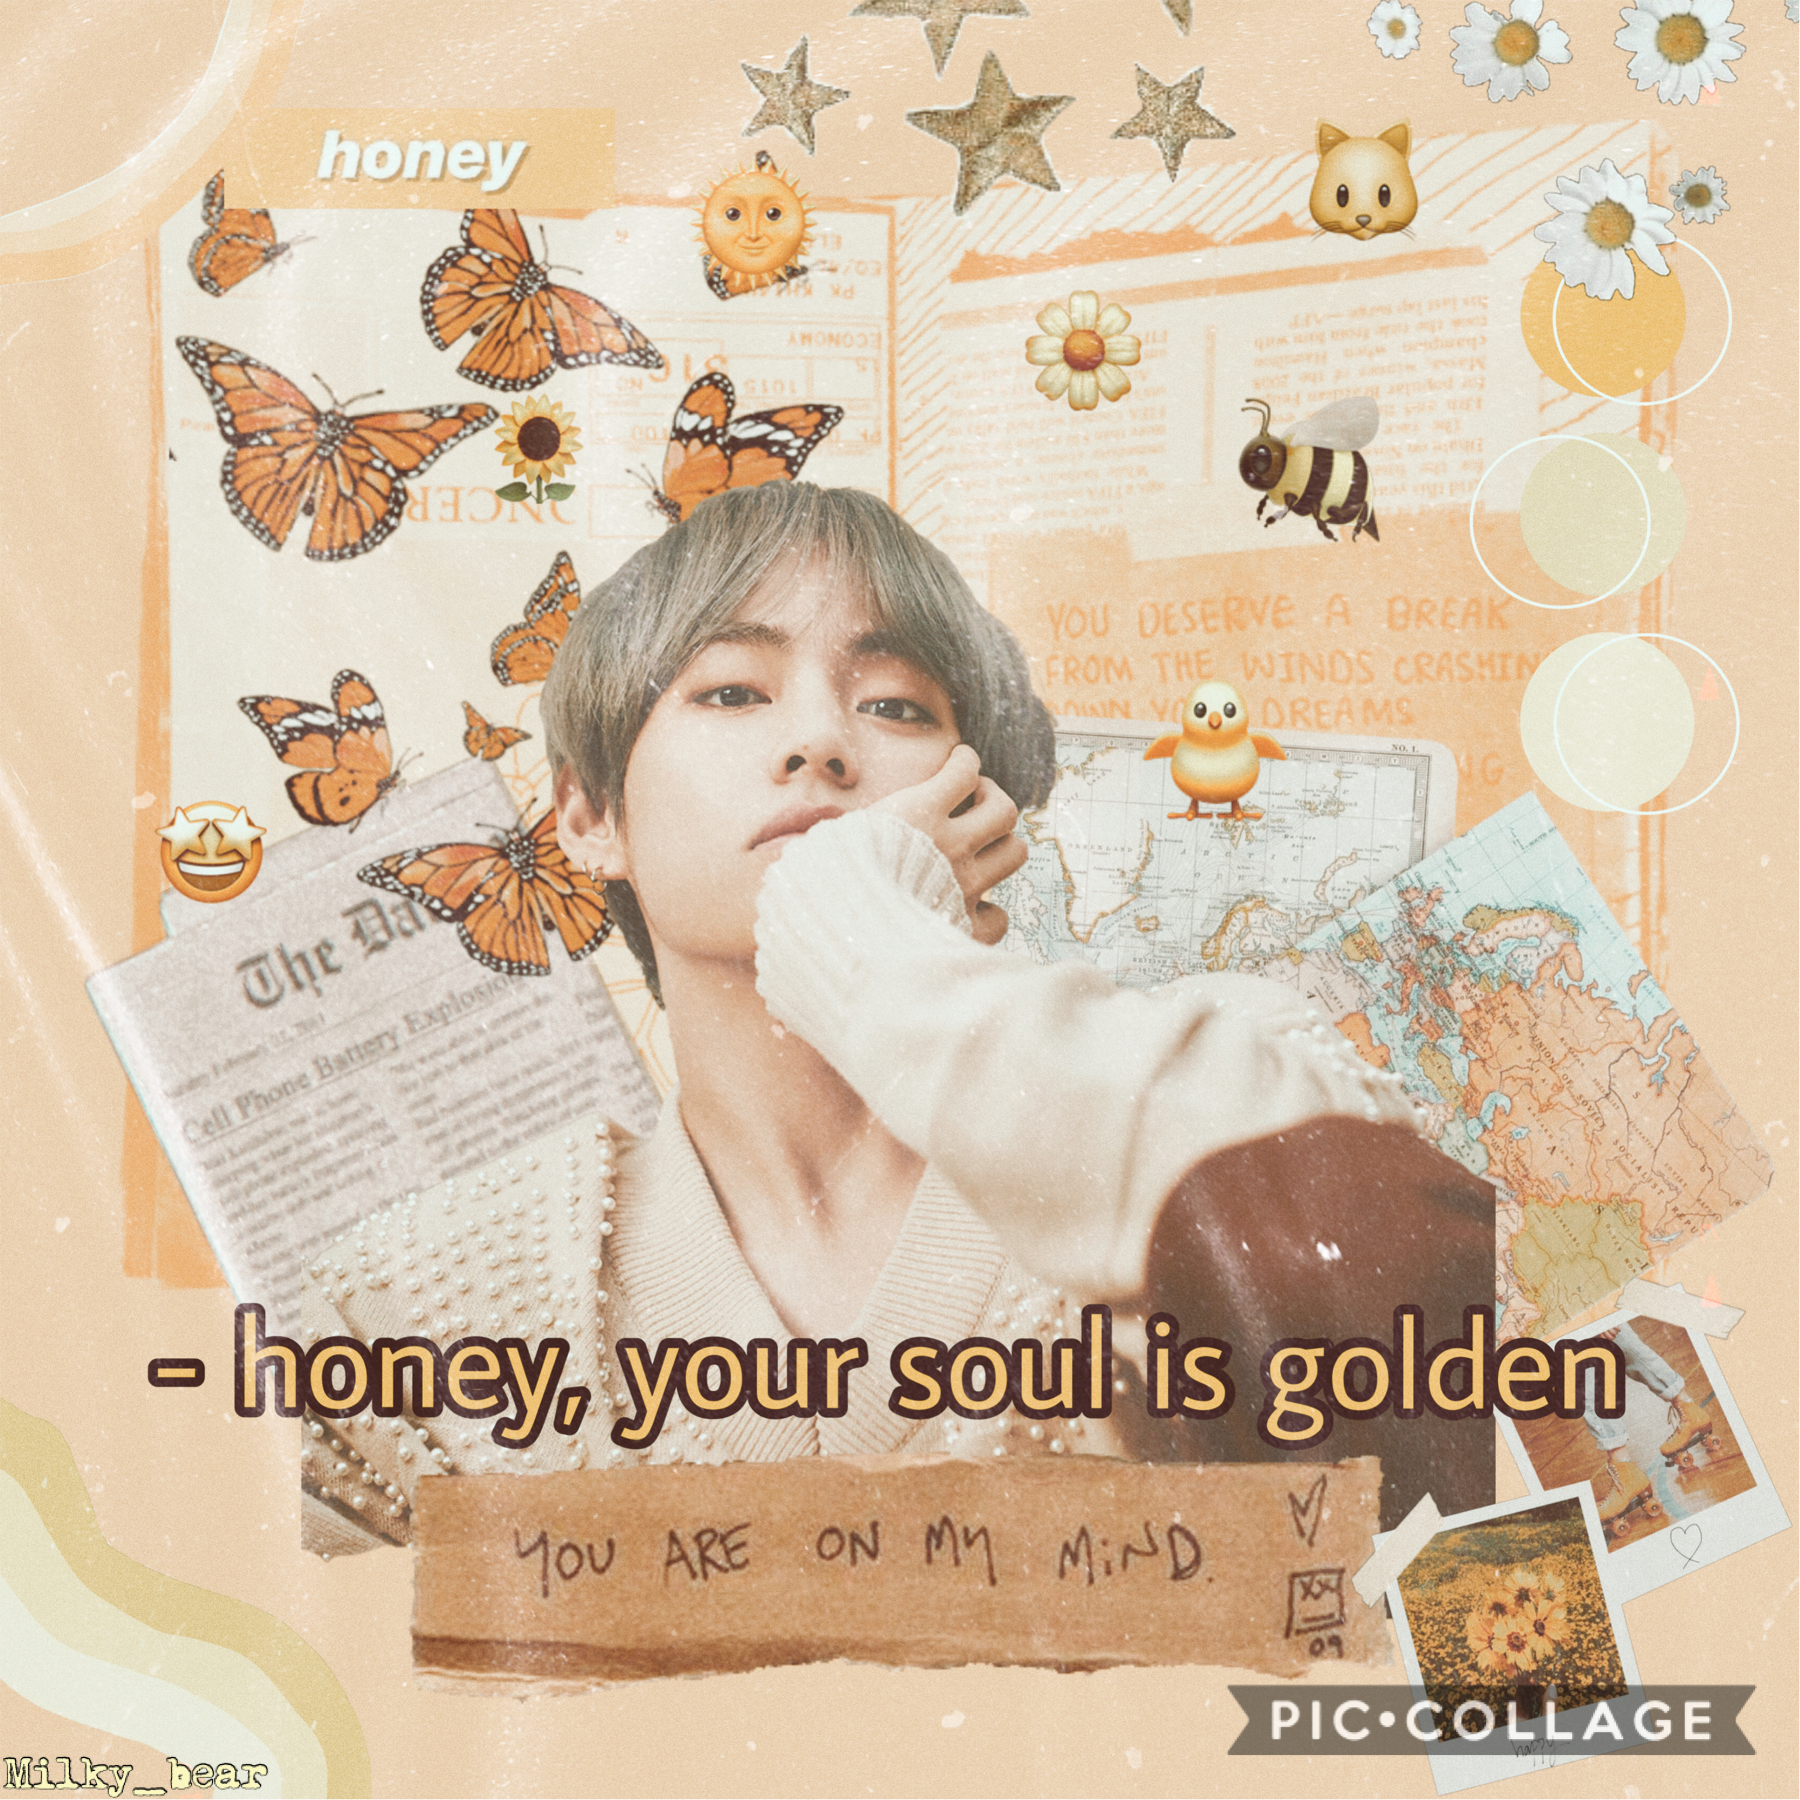 ⭐️TAP⭐️ Hey 🐻BEARS🐻 how are you all I think I found my new style I have been making lots of collages in PicsArt lately QOTD: favourite TikTok song